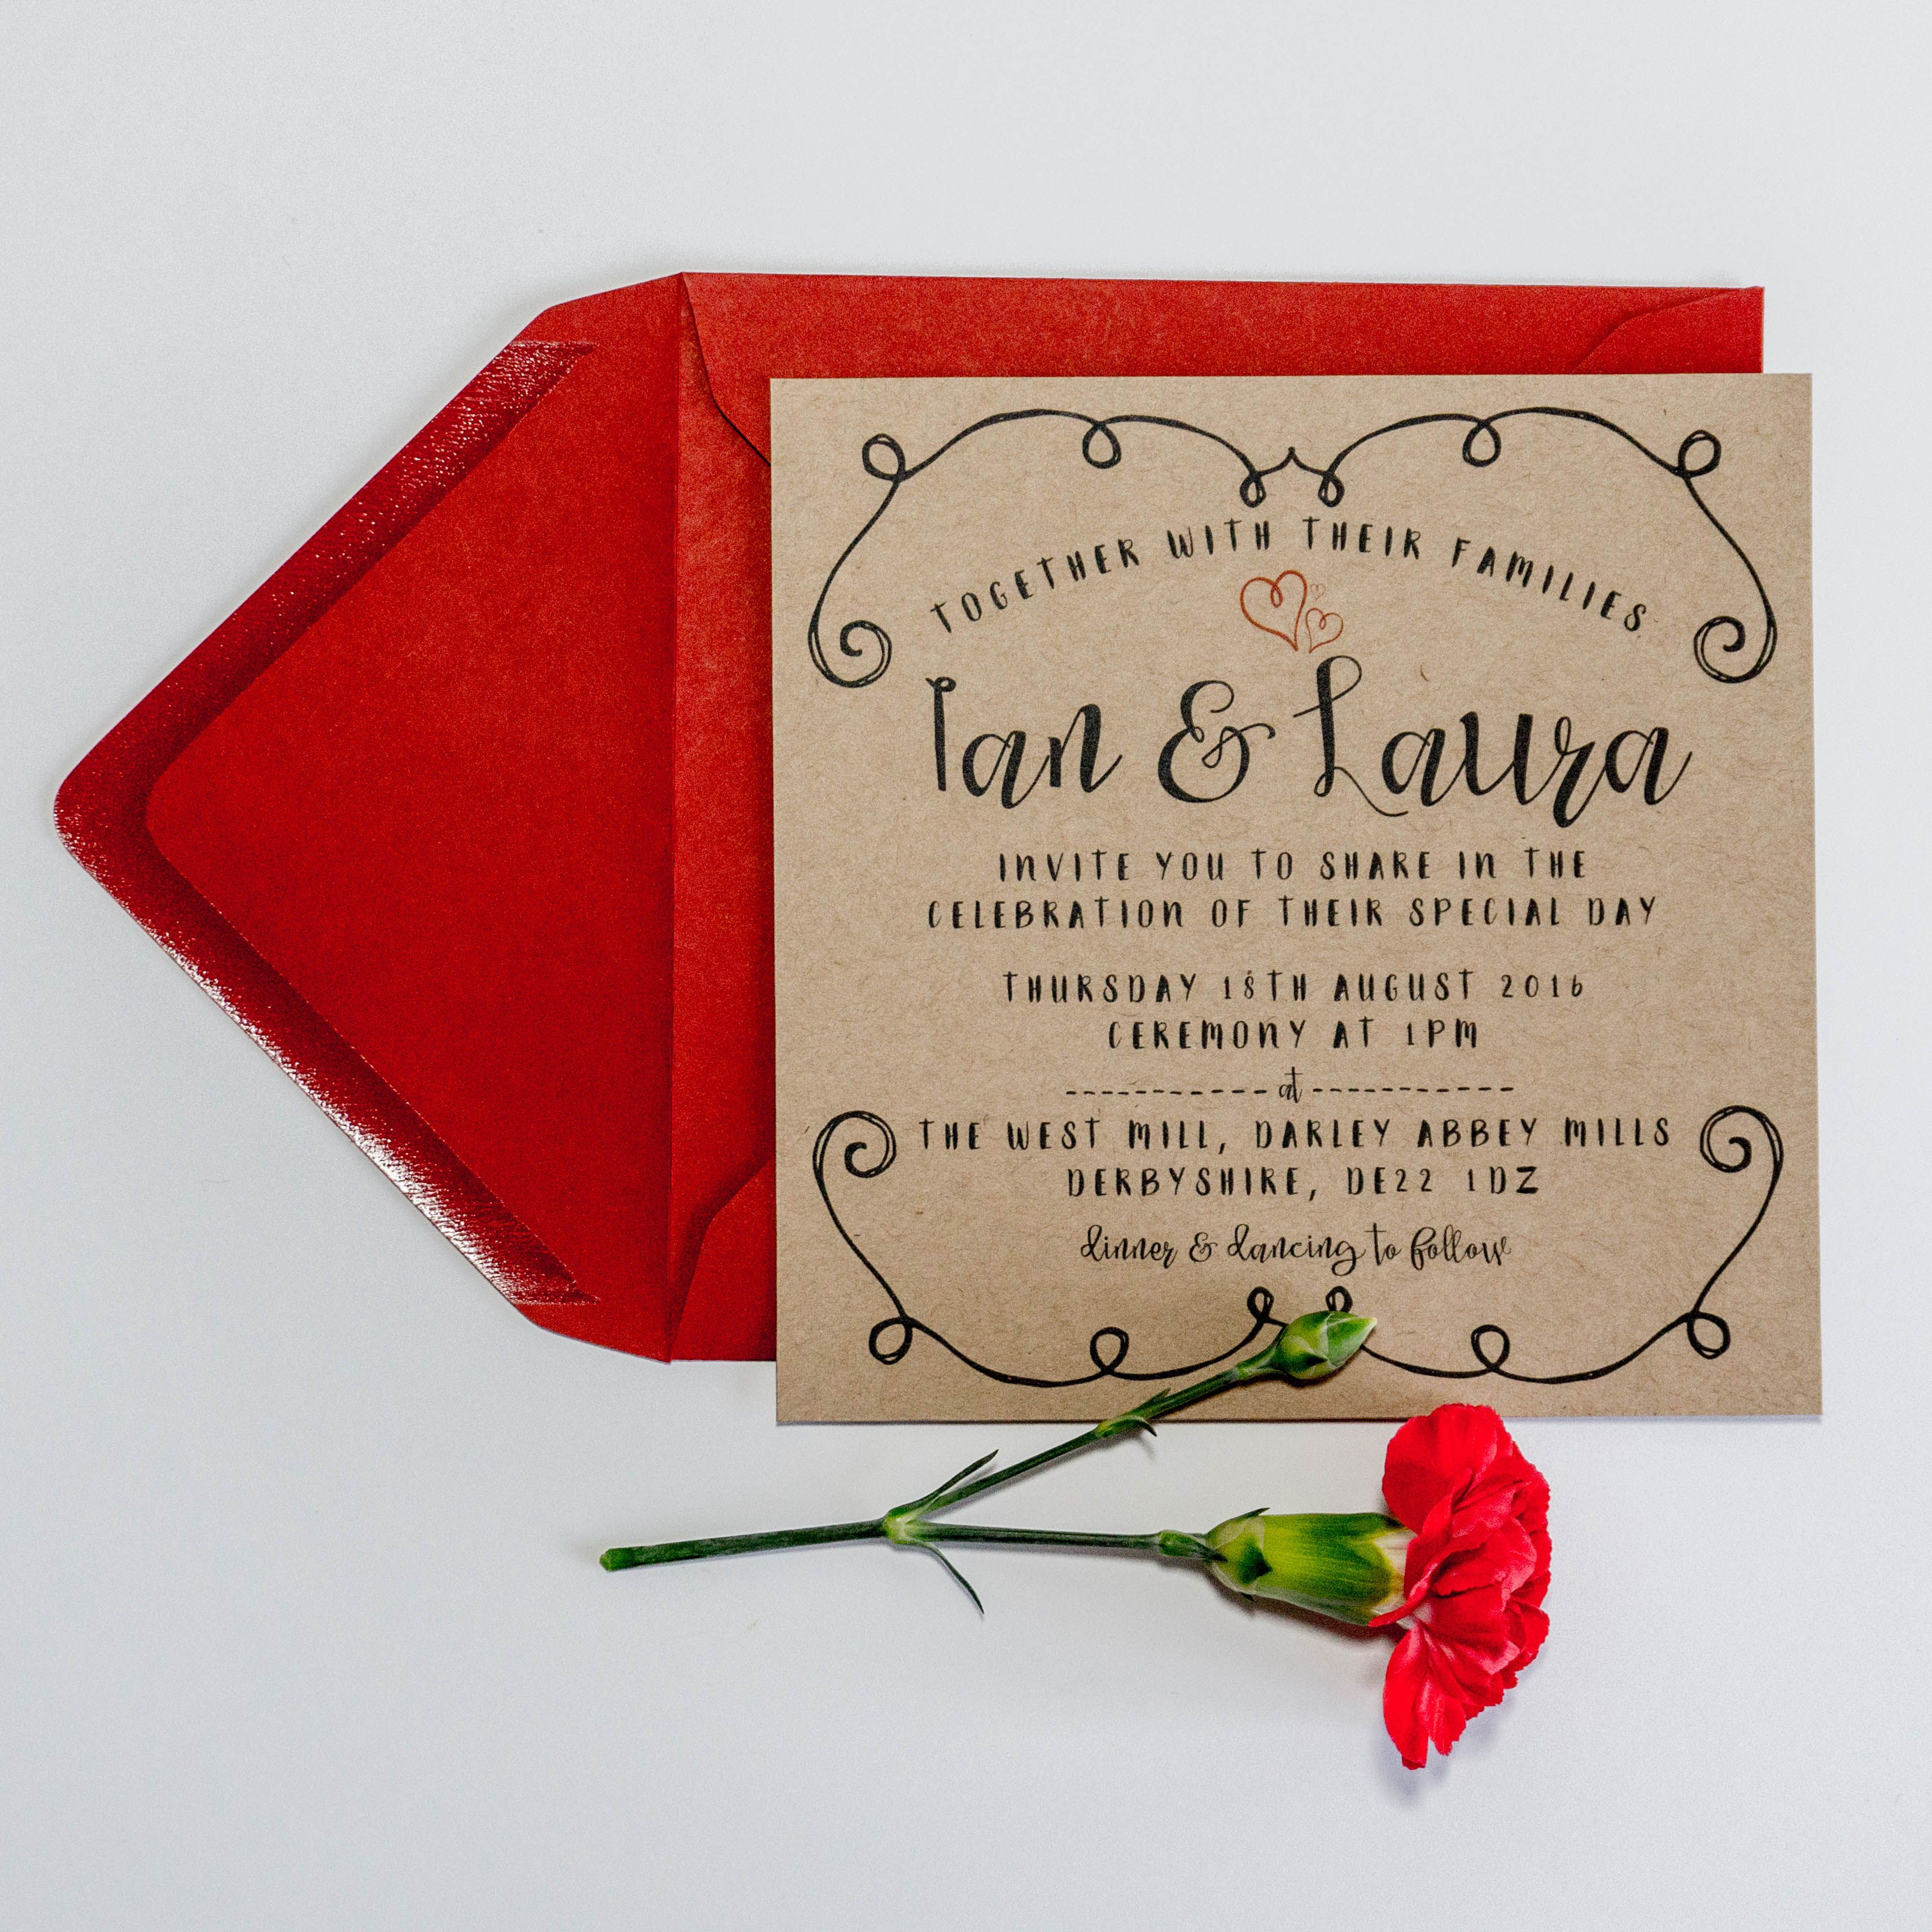 Square rustic decorative border wedding invitation set. Printed onto ...